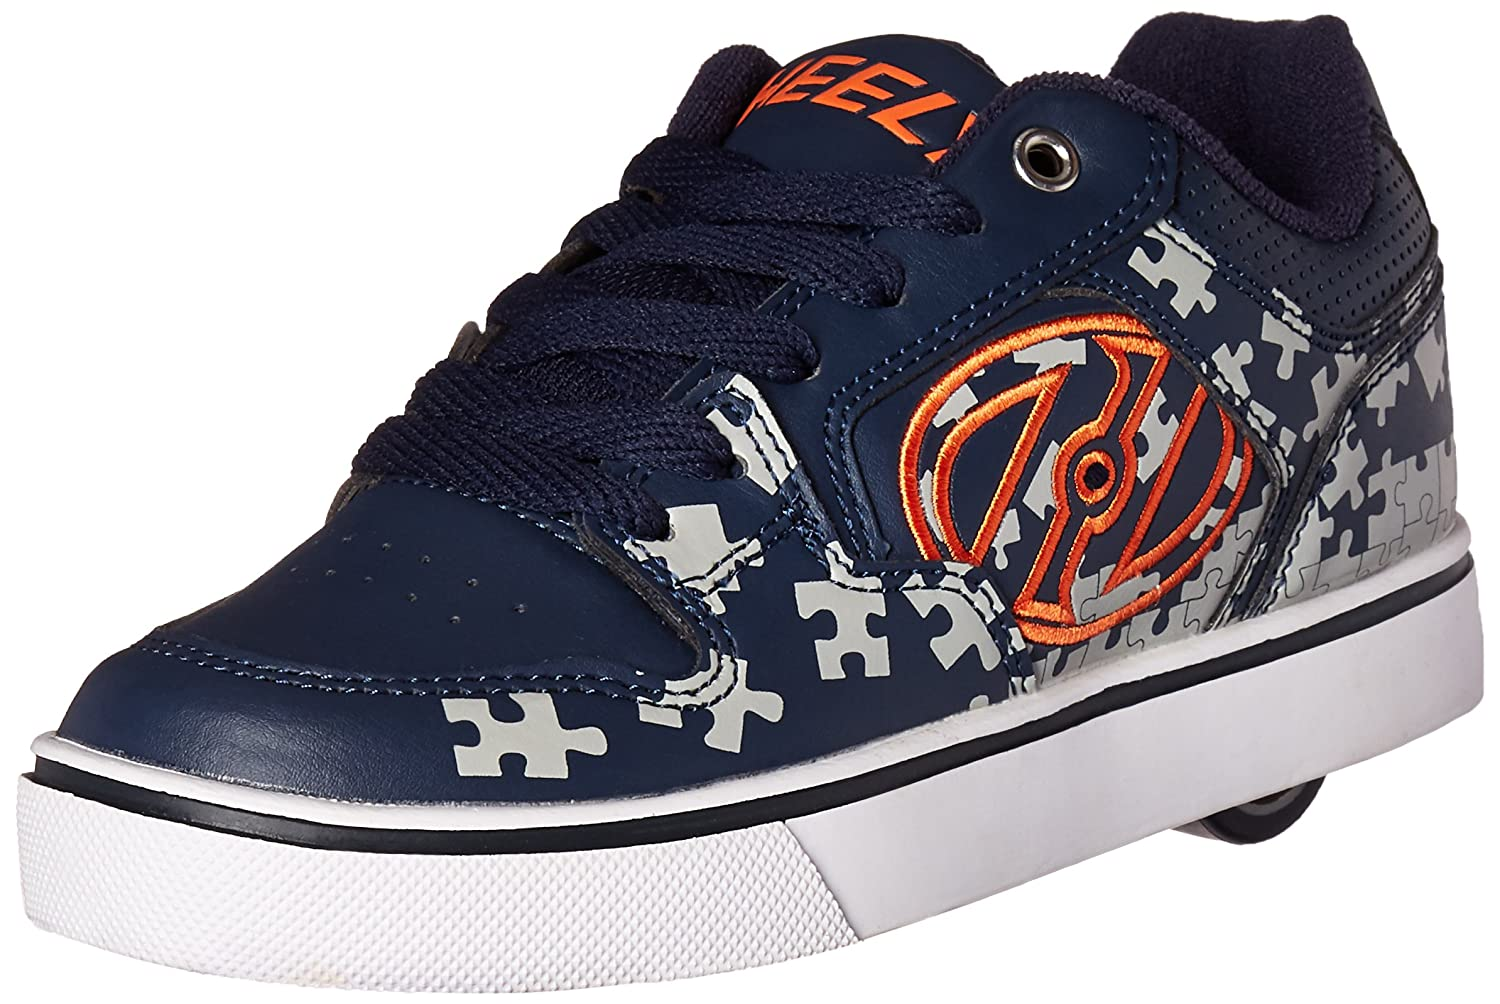 Heelys Motion Plus Zapatillas para niños color Red Black Grey Skulls talla